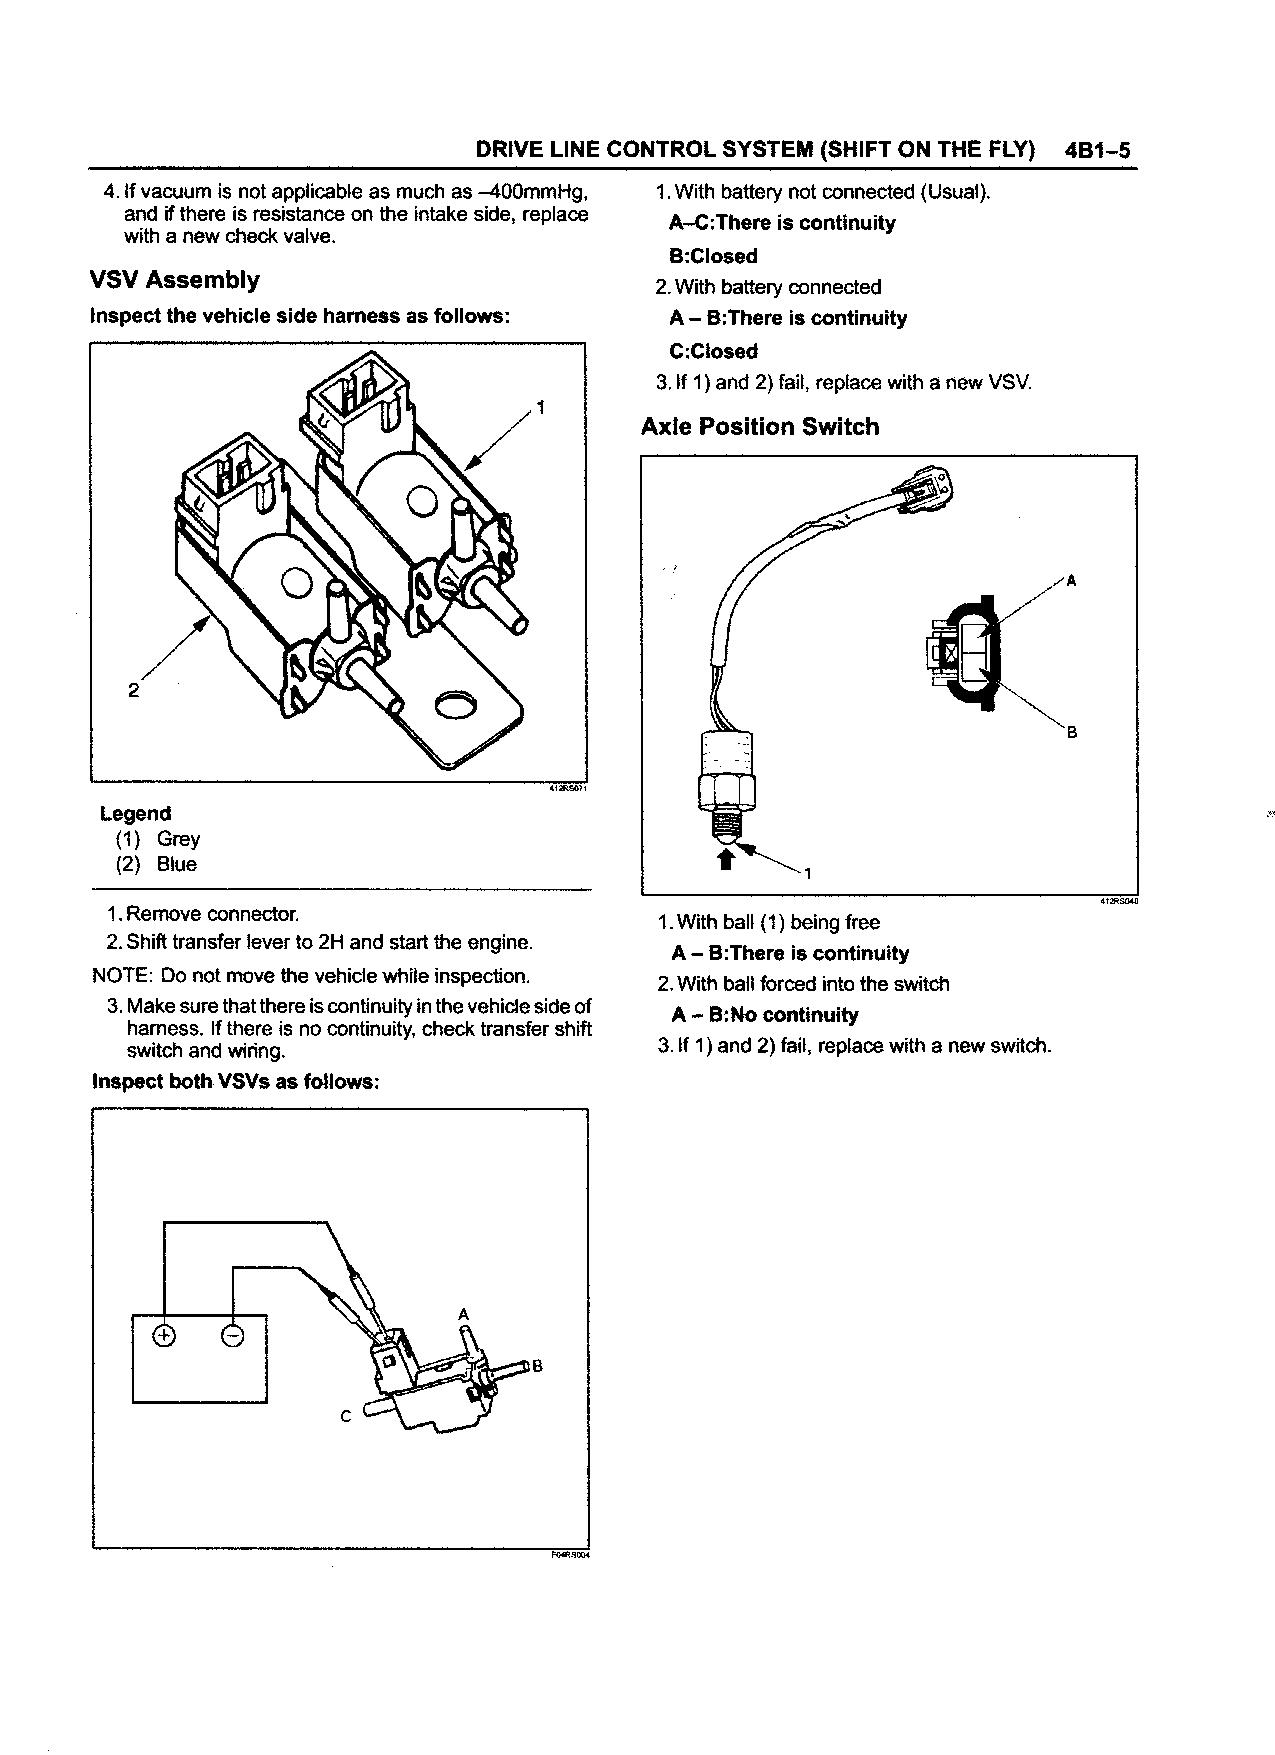 Info Request: Anyone know about 1998 Isuzu Trooper 4wd Systems ?